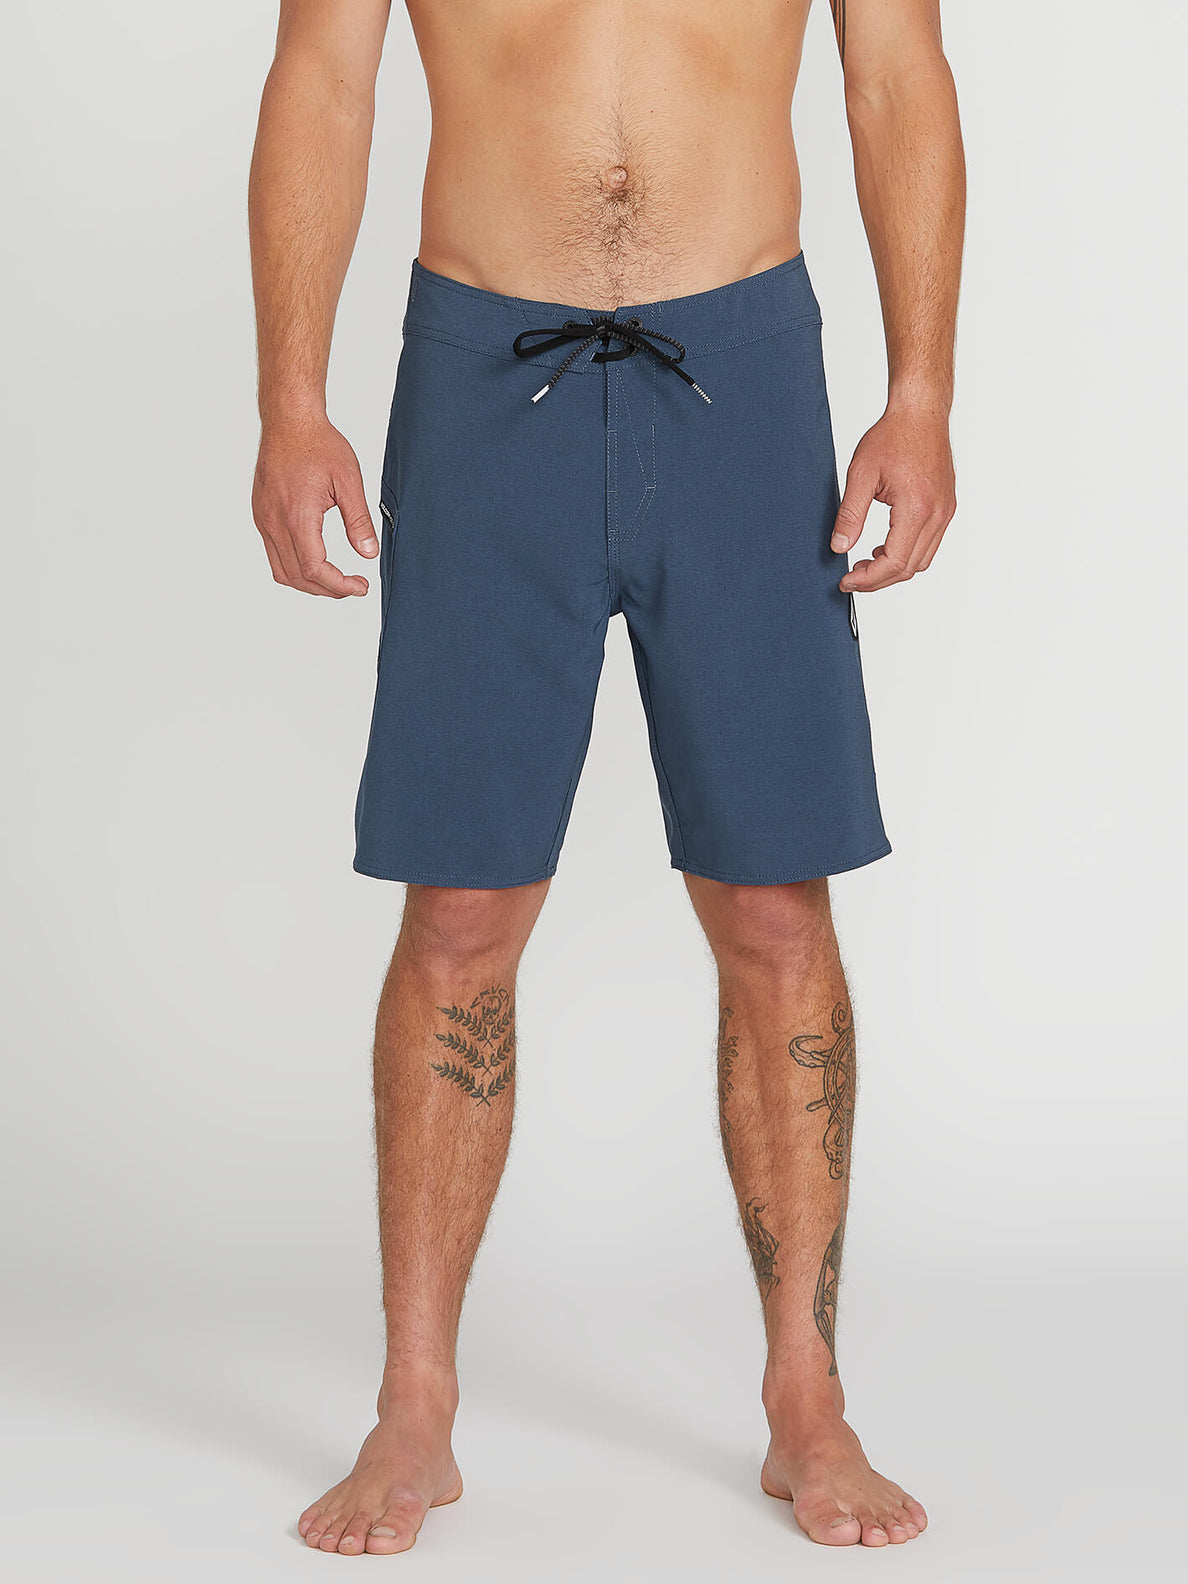 Lido Solid Mod Trunks - Smokey Blue (A0811926_SMB) [1]